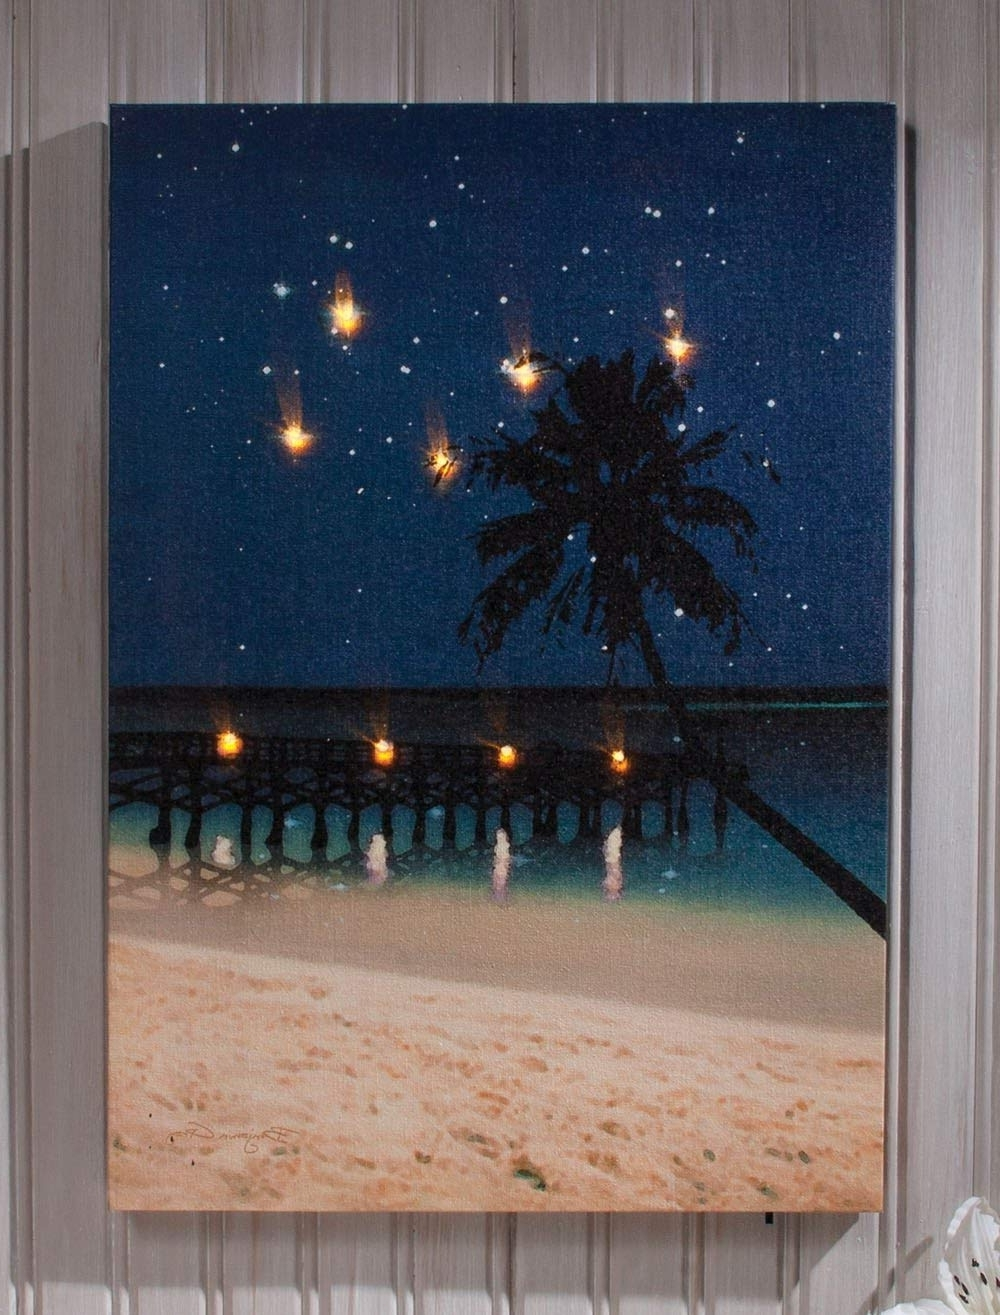 Popular Amazon: Ohio Wholesale Radiance Lighted Canvas Wall Art, Starry Intended For Lighted Wall Art (View 4 of 20)